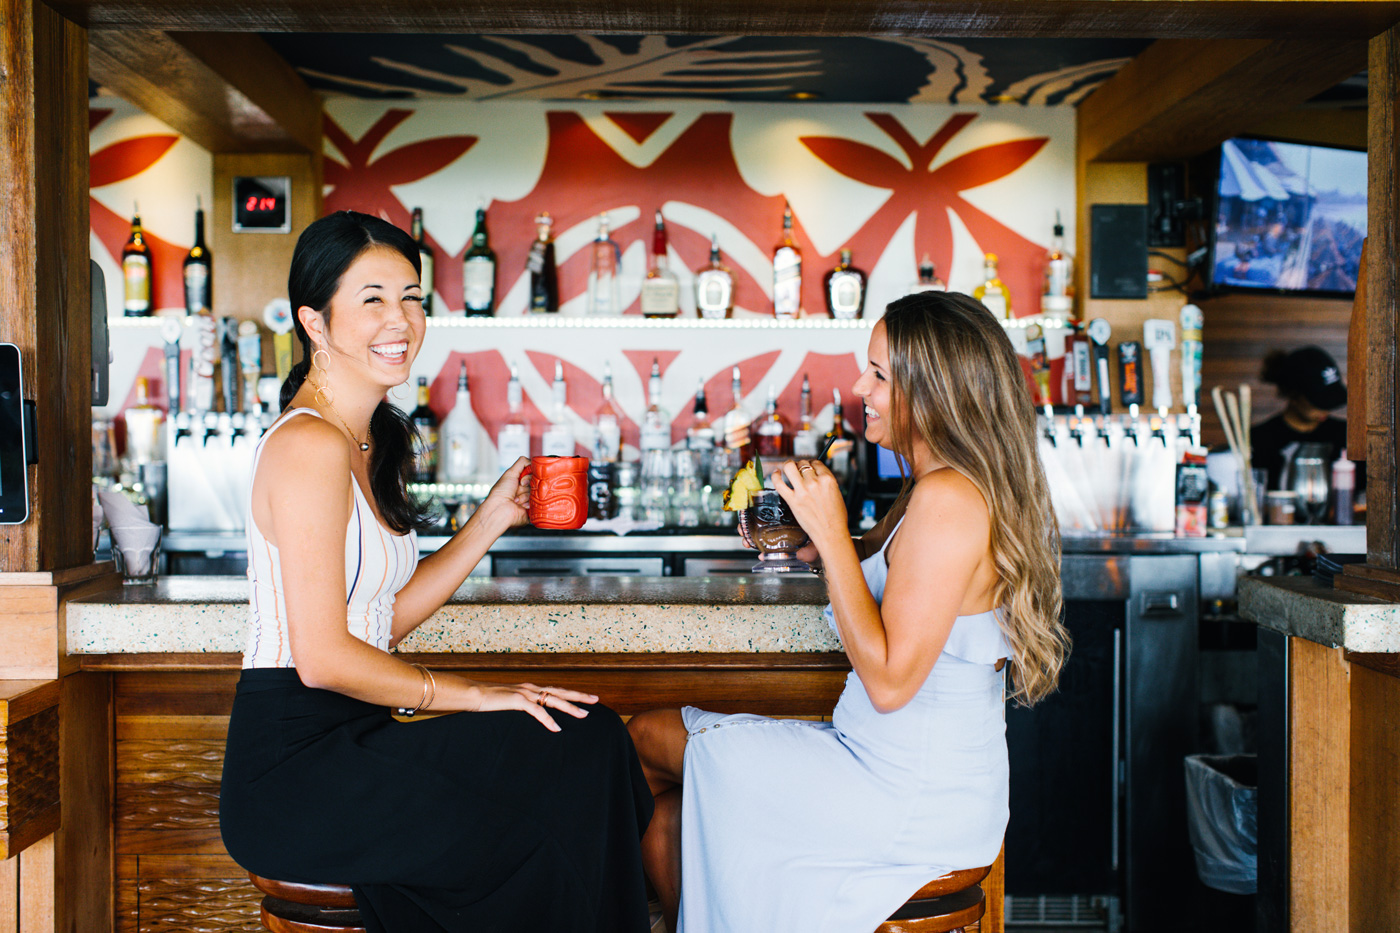 Two women enjoying drinks at the bar